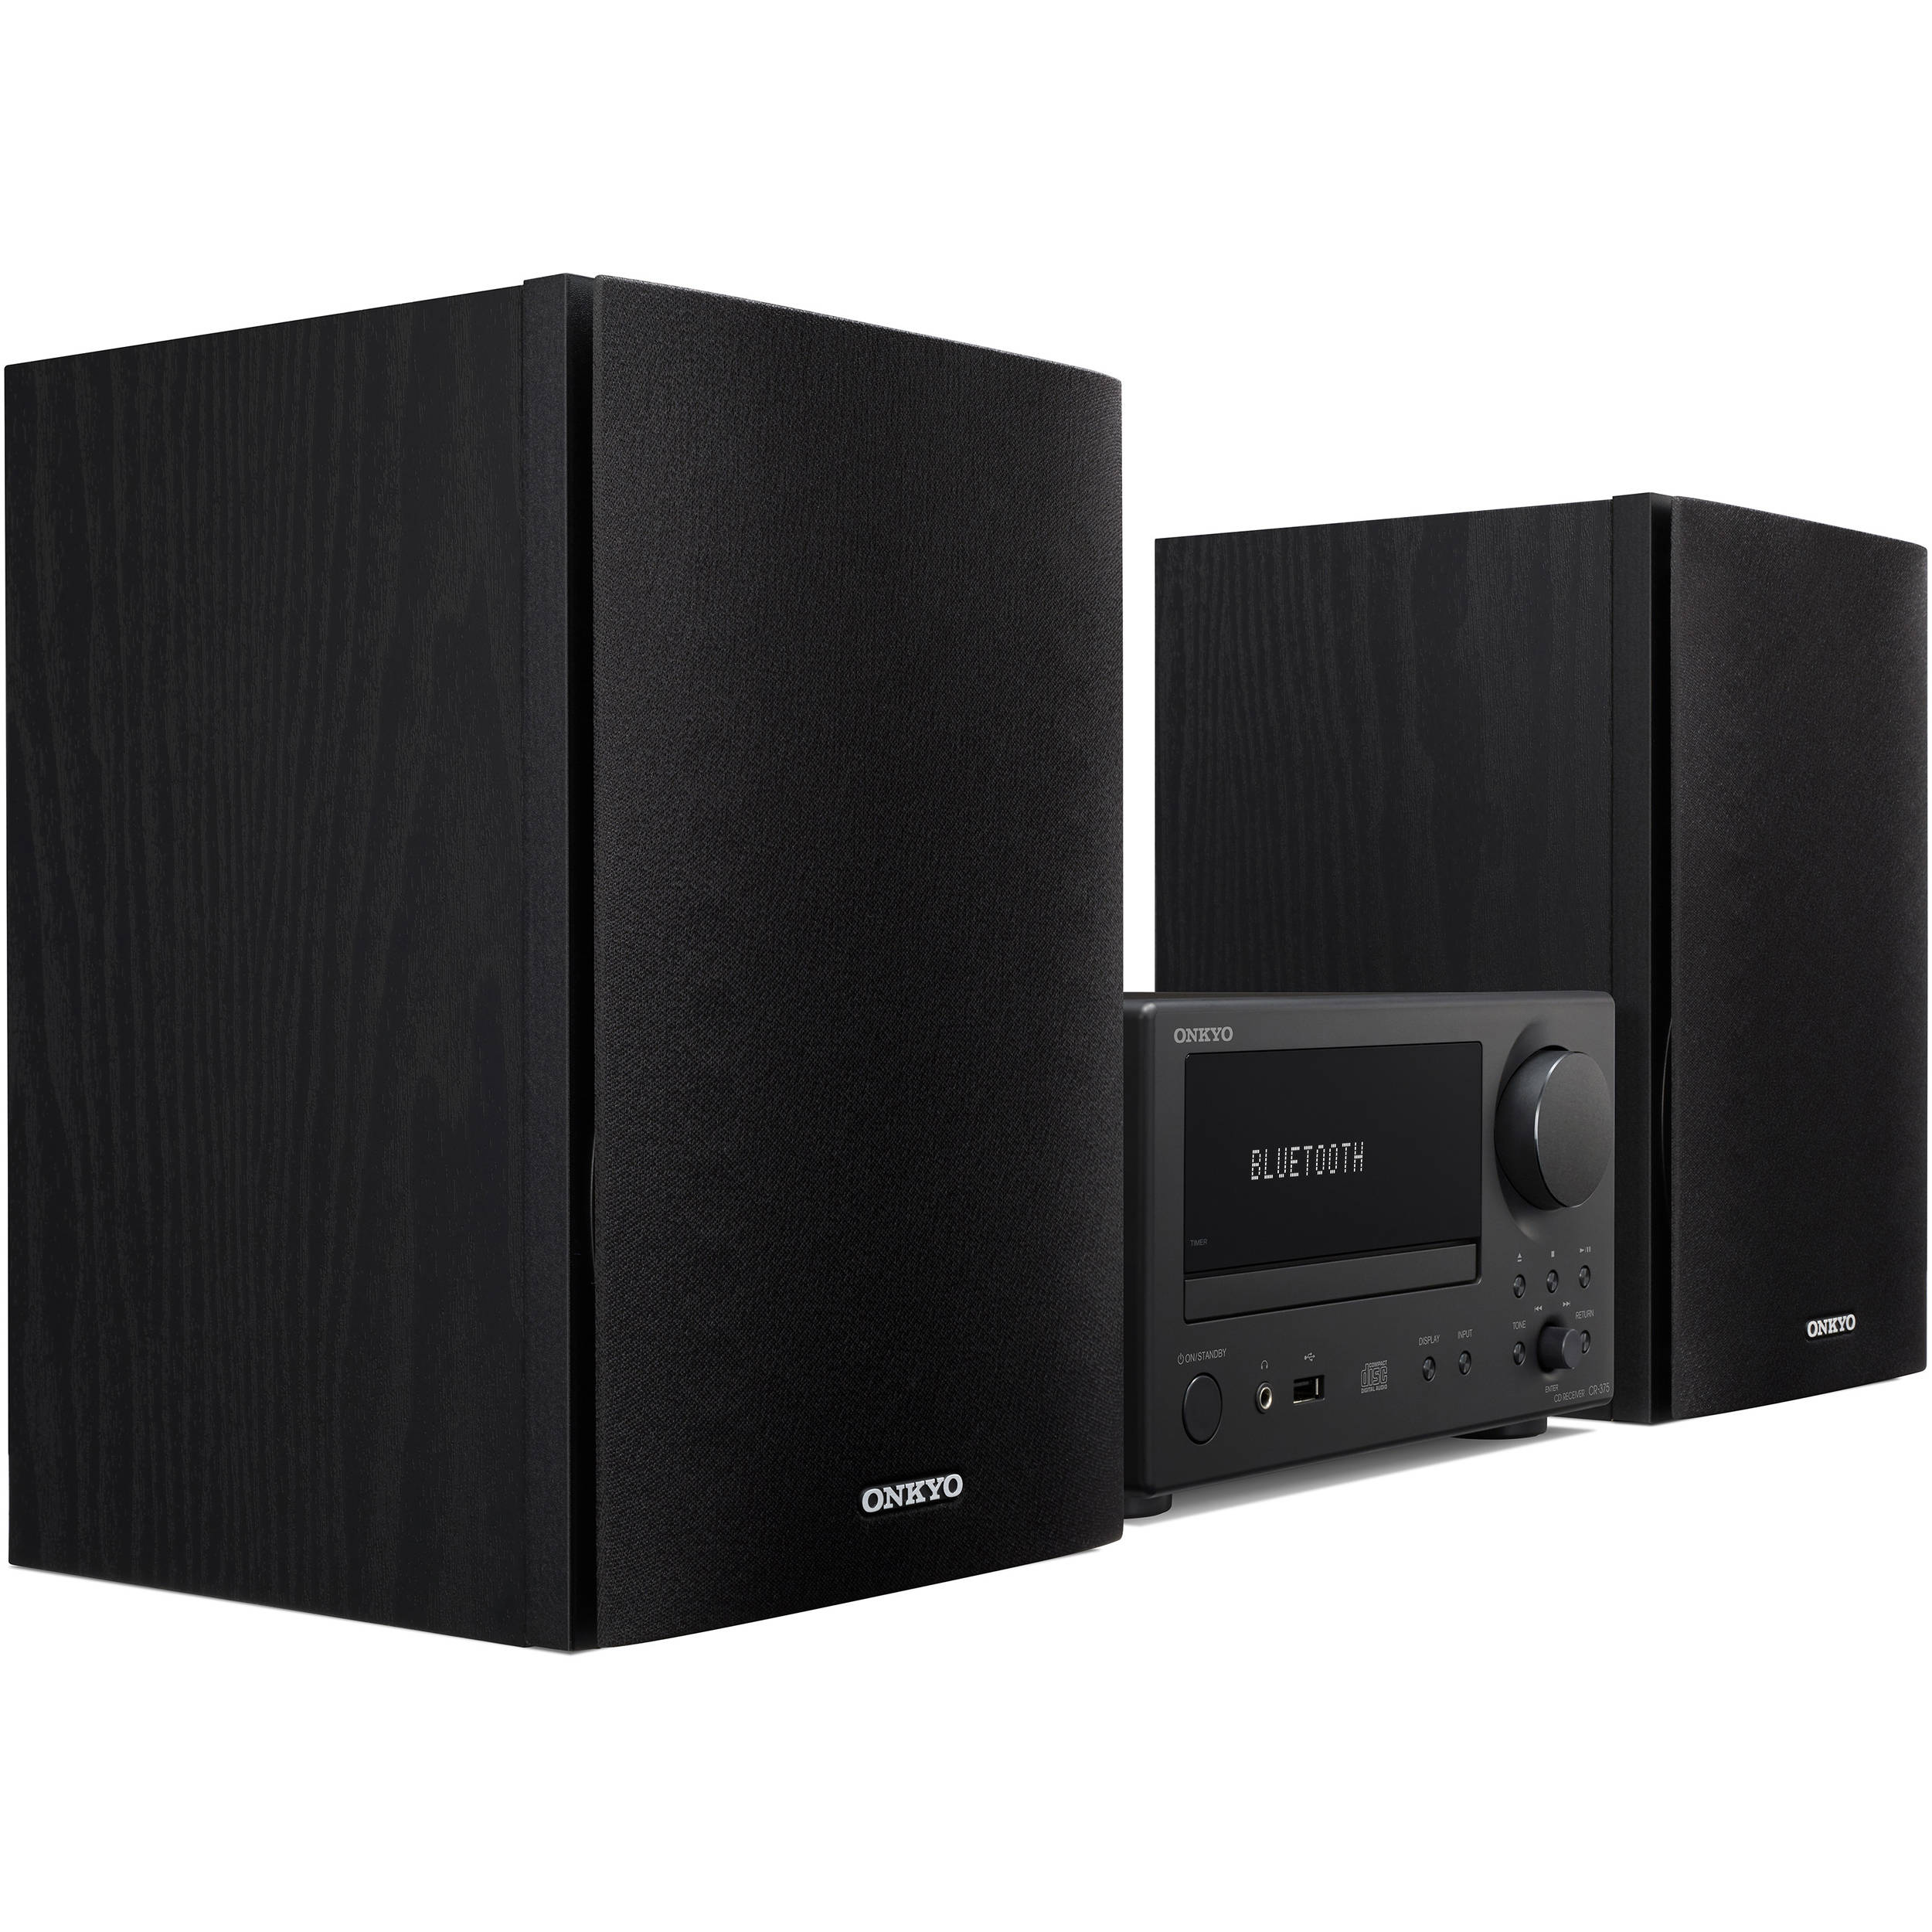 onkyo mini stereo system. onkyo cs-375 40w bluetooth wireless music system mini stereo